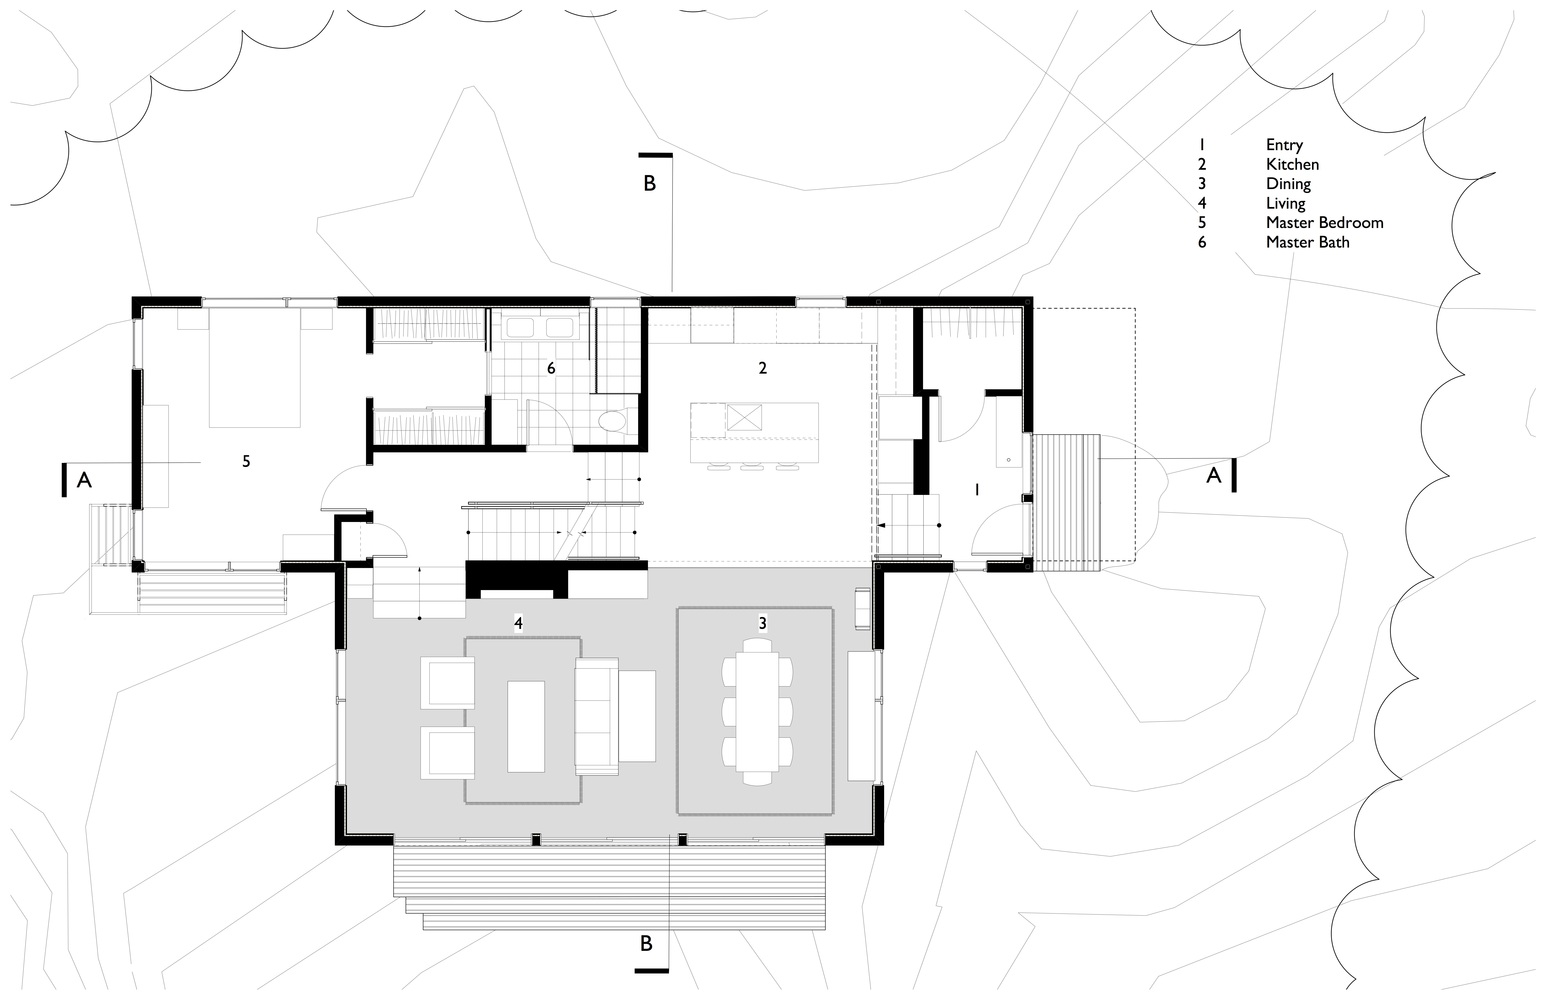 Gallery of Lily Pond House / Theodore + Theodore Architects - 15 on horse stable house plans, snow house plans, pool house plans, marsh house plans, jackson house plans, spa house plans, bank barn house plans, gypsy wagon house plans, pardee house plans, canal front house plans, pond building costs, pond building blueprints, miller house plans, screened porch house plans, house house plans, main house plans, 30x40 barn house plans, park house plans, nature house plans,